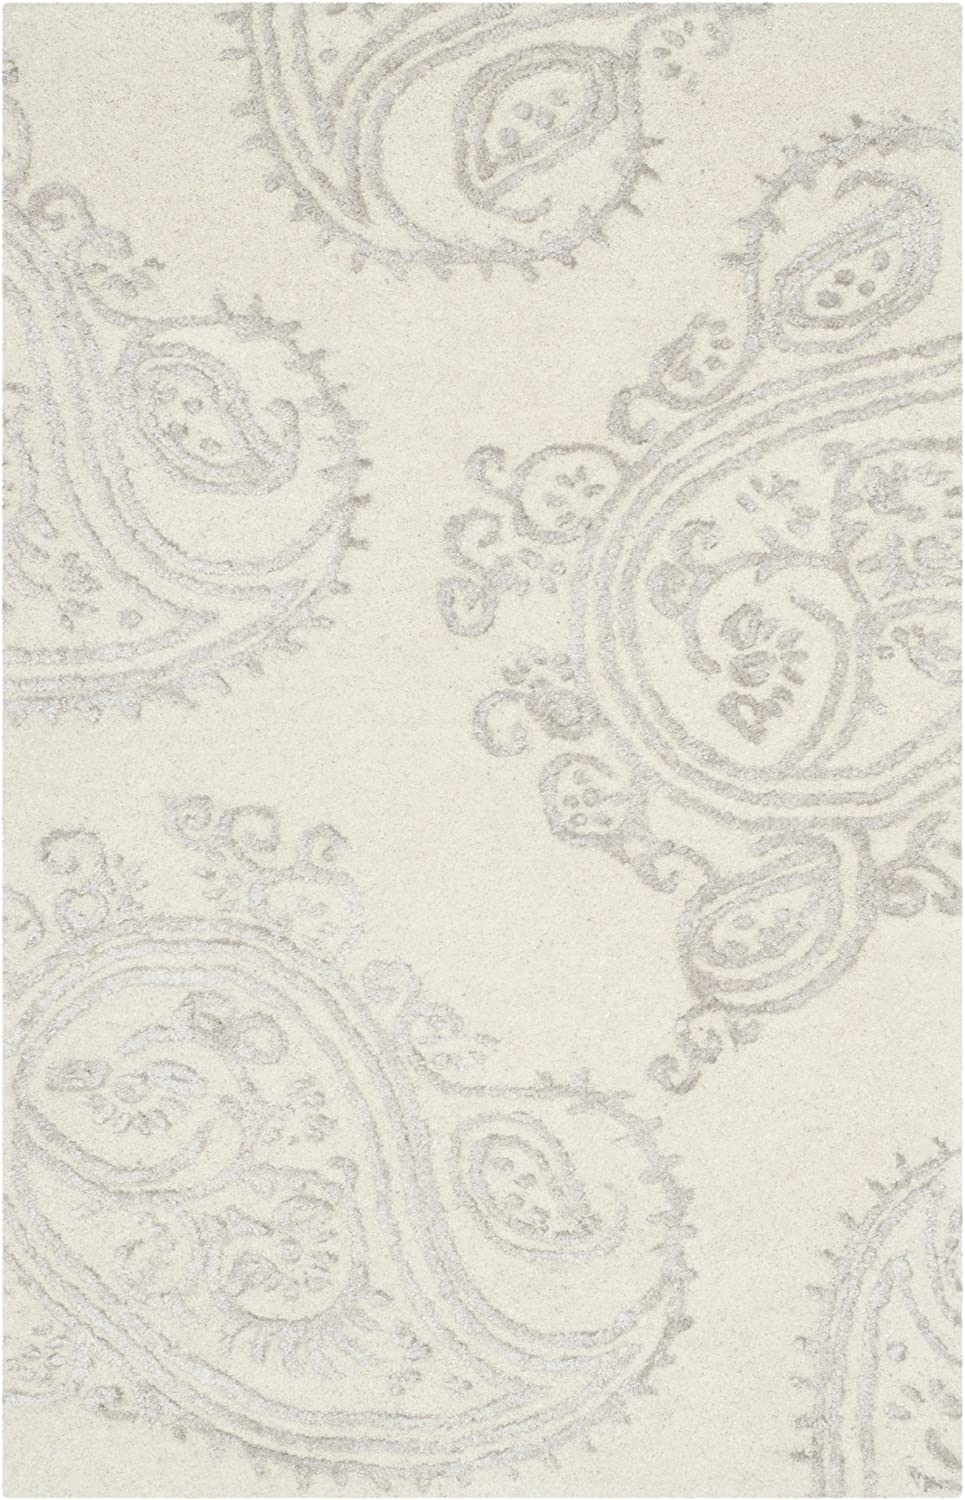 LARGE GREY PAISLEY PATTERNED SOFT CHEAP BUDGET RUG RUNNER SALE SMALL